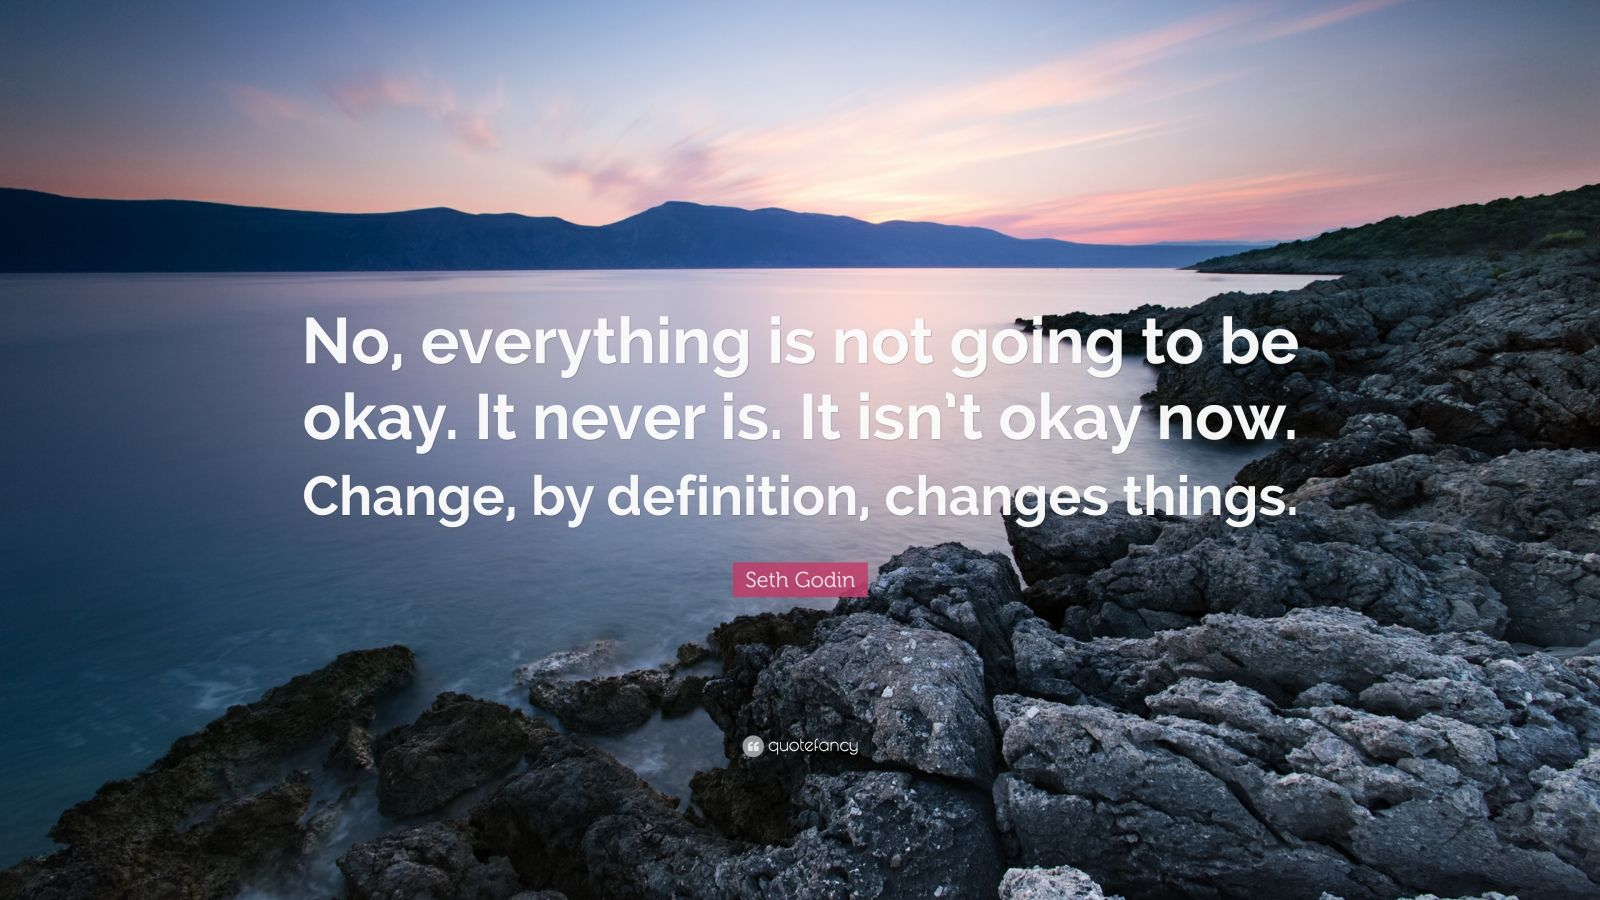 """Seth Godin Quote: """"No, everything is not going to be okay. It never is. It isn't okay now. Change, by definition, changes things."""""""